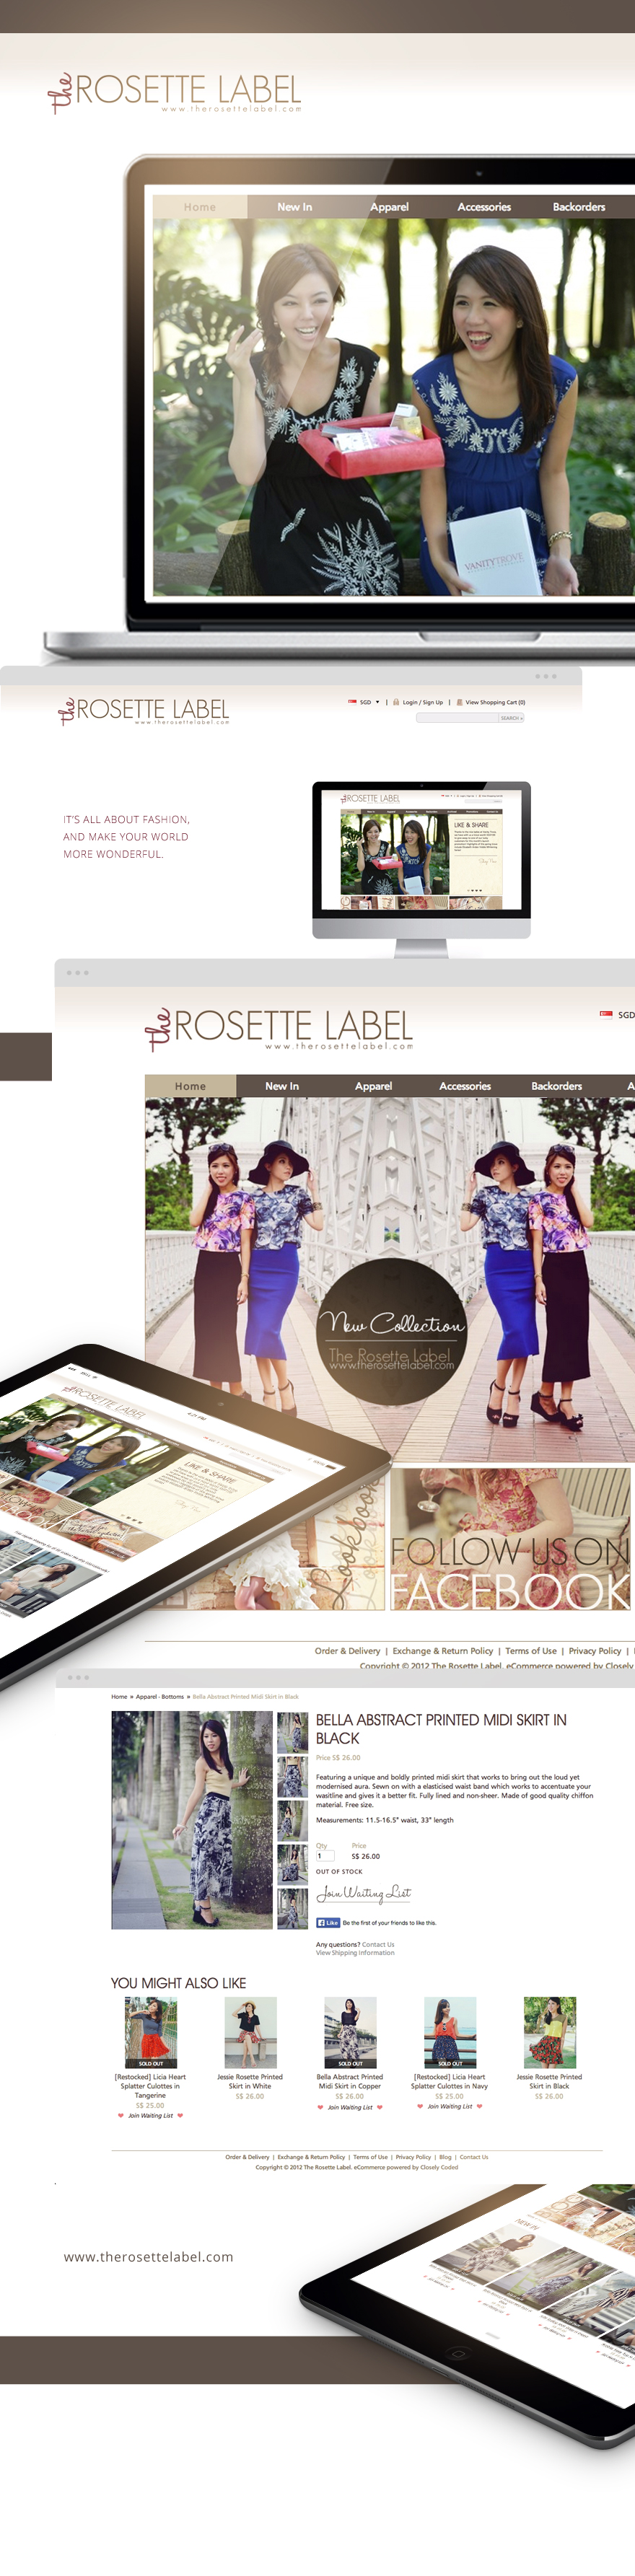 Projects - The Rosette Label